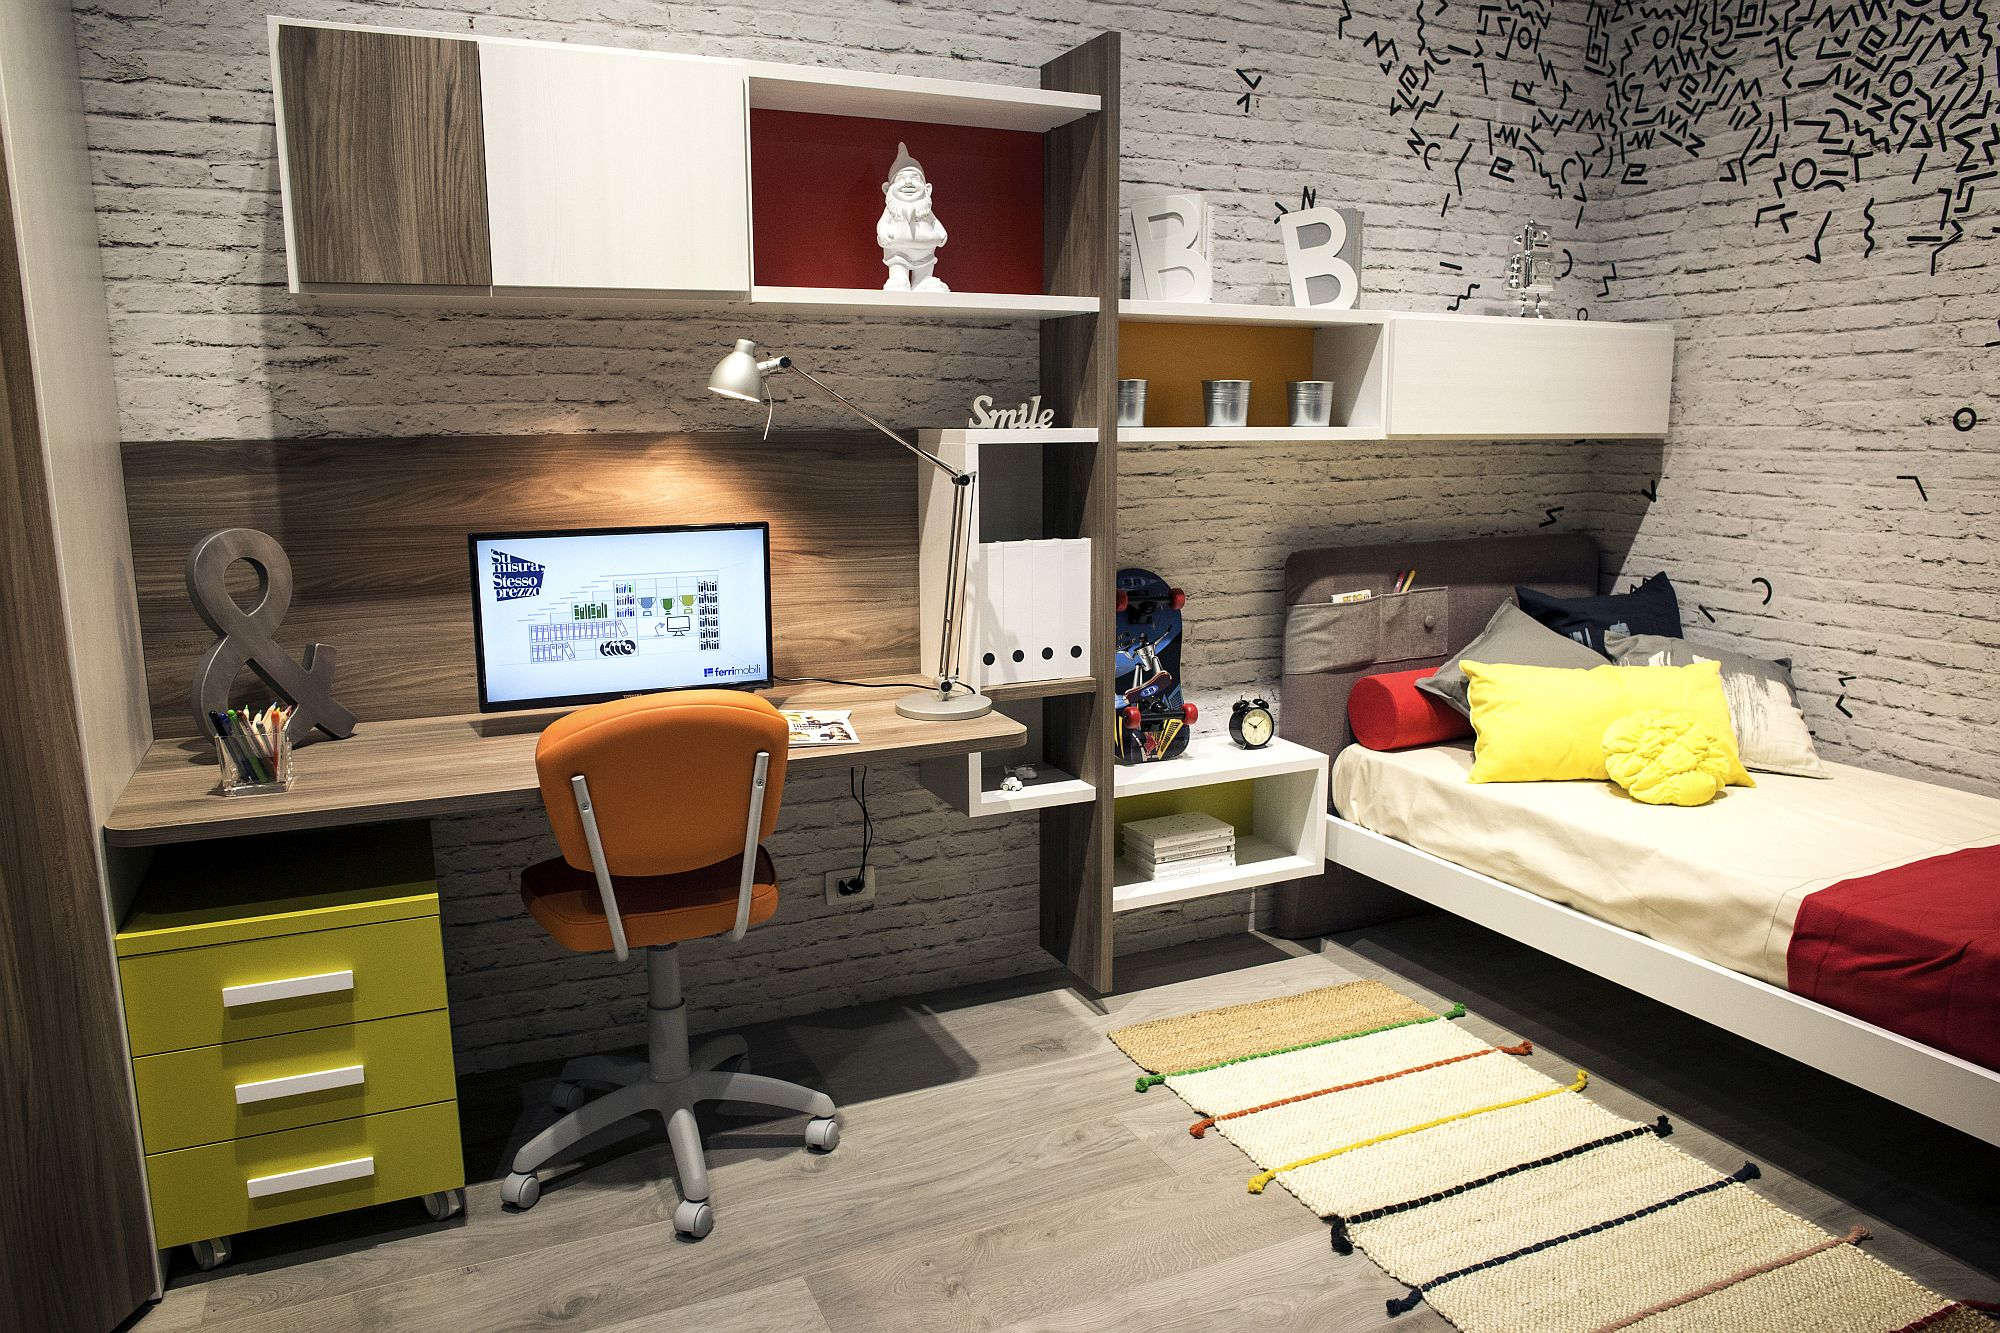 Small kids' bedroom idea with modular shelving and corner bed